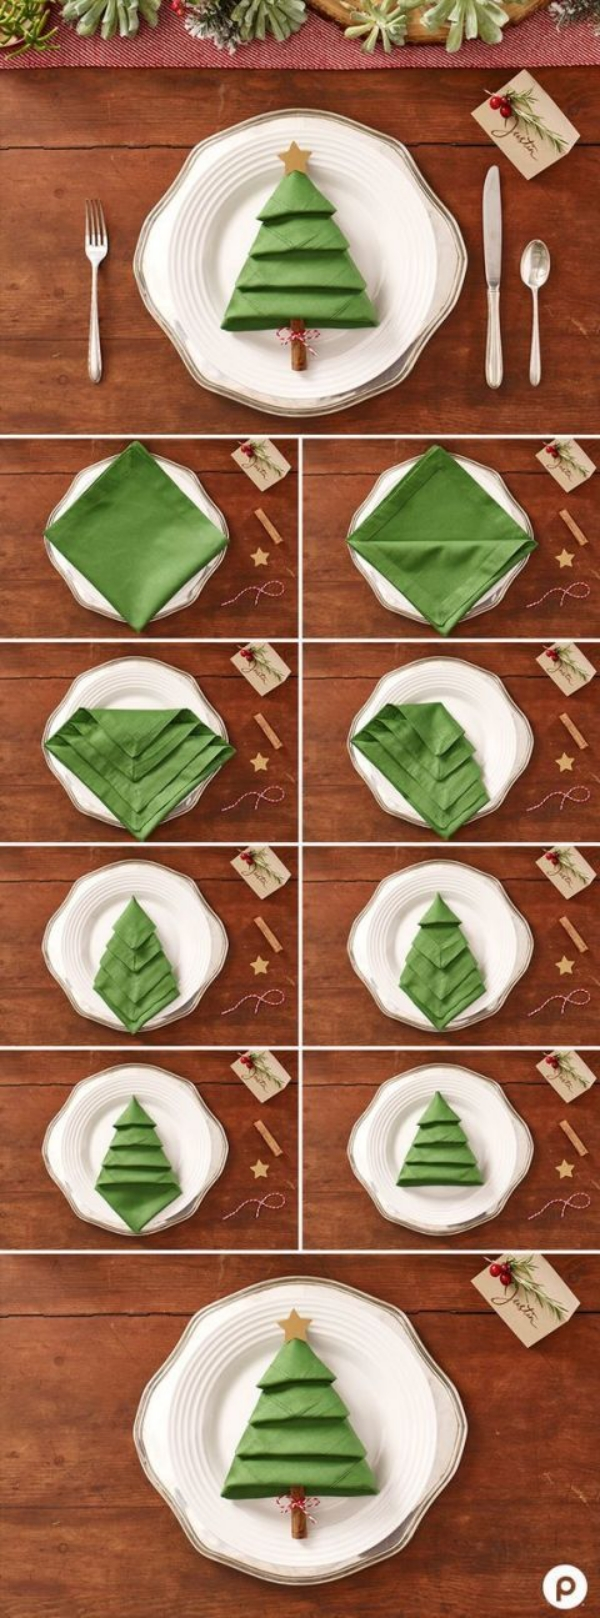 Elegant-DIY-Christmas-Table-Decorations-and-Settings-Ideas